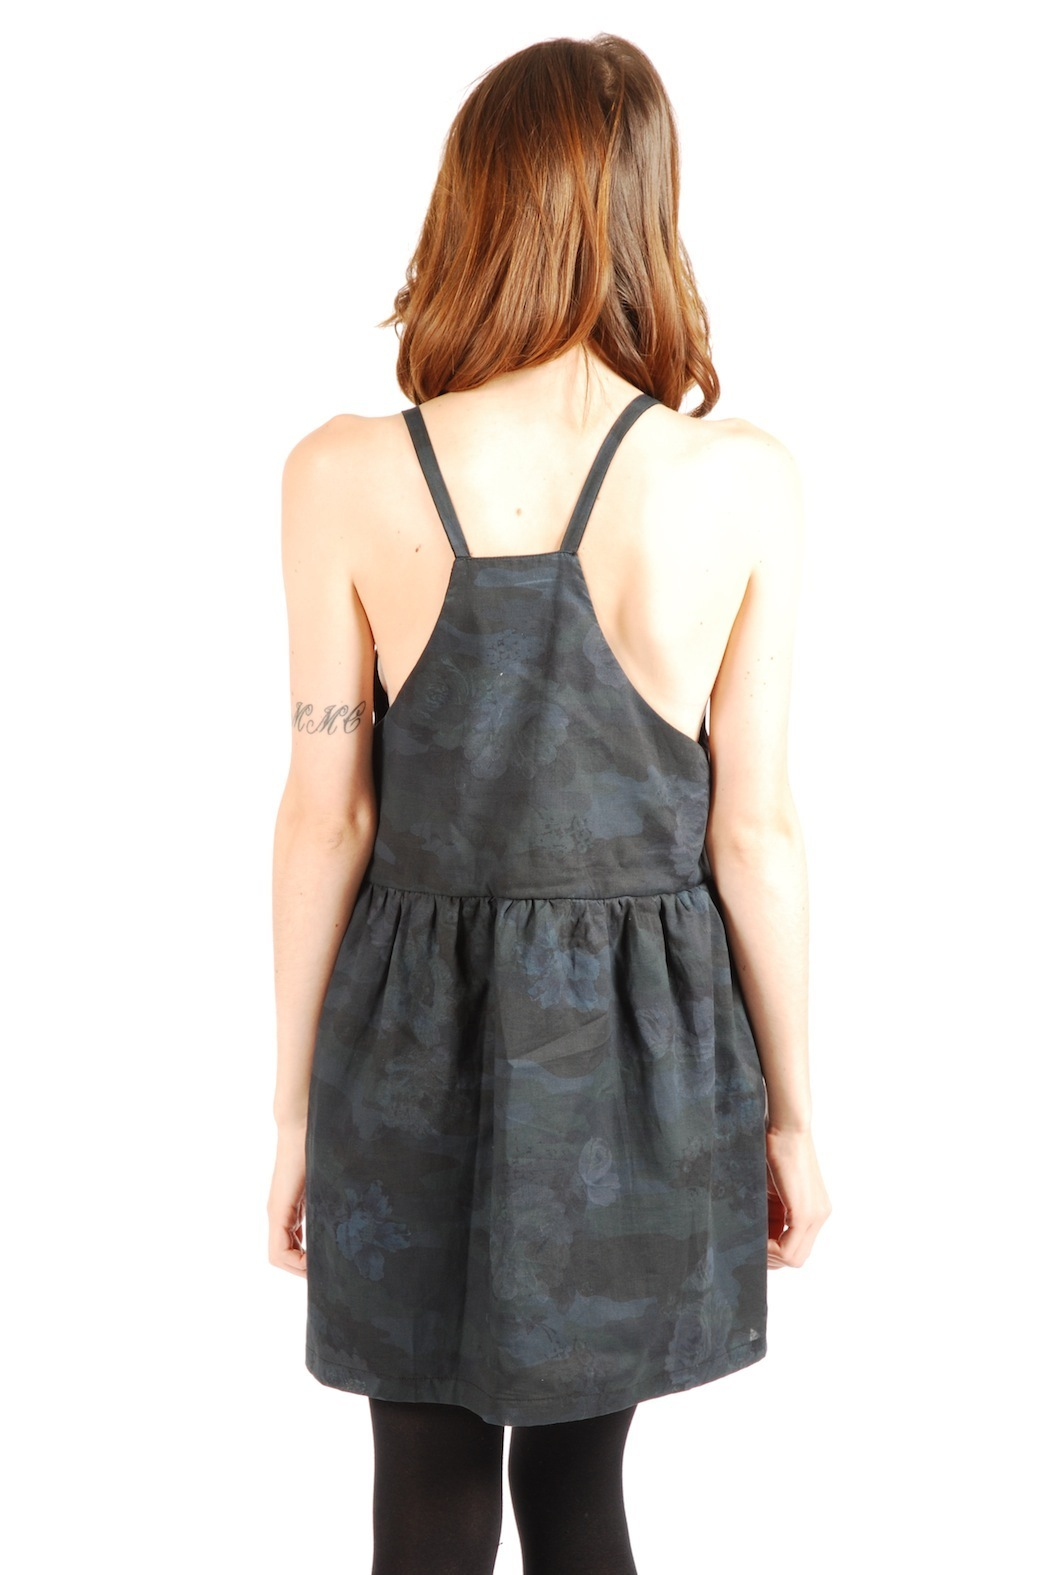 Mimi's Beer Spaghetti Strapped V-Neck Dress - Back Cropped Image